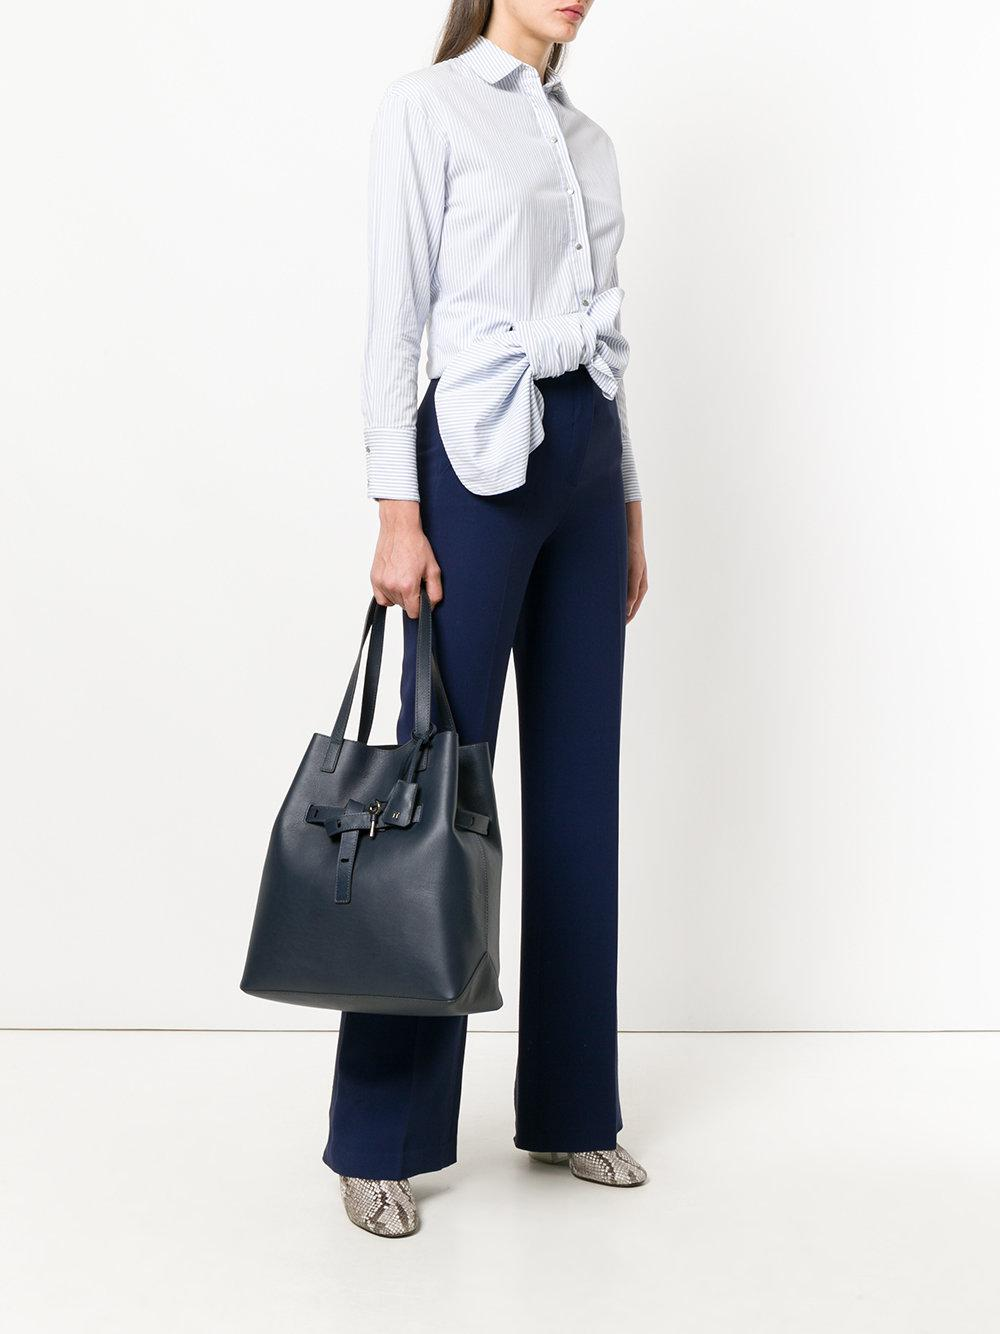 Tila March Leather Lea Tote Bag in Blue